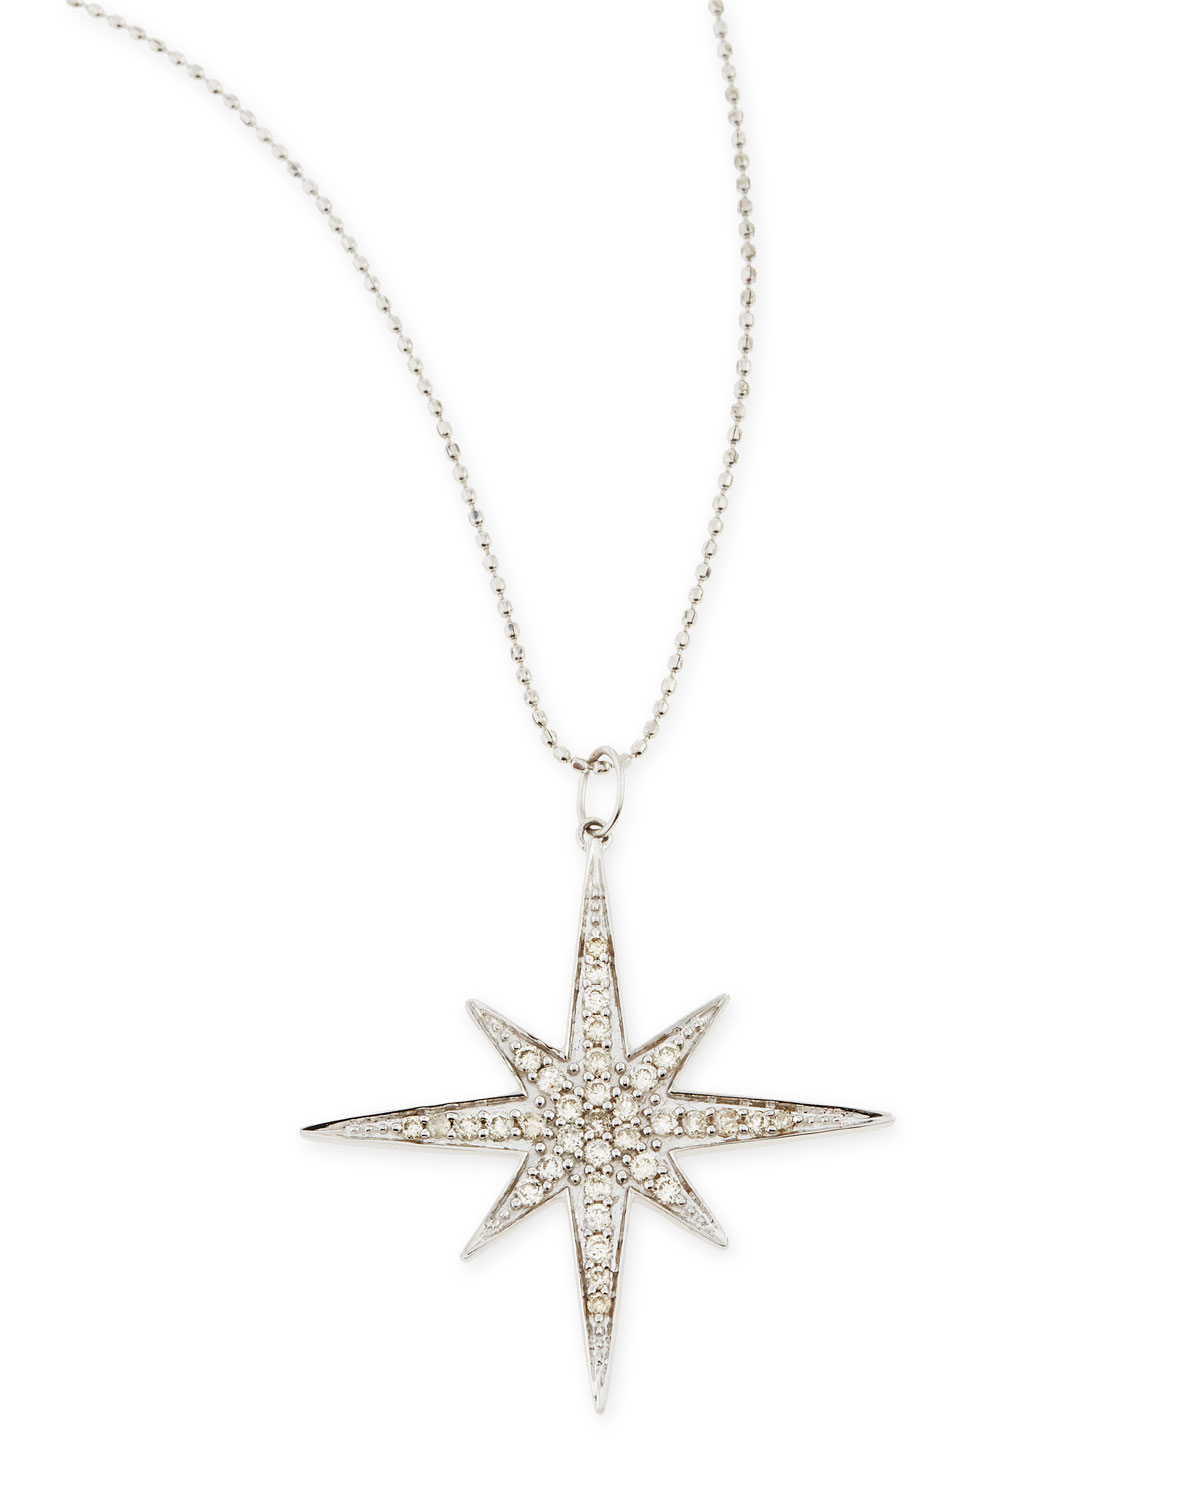 Sydney Evan Diamond Starburst Pendant Necklace 2hU8IDWA